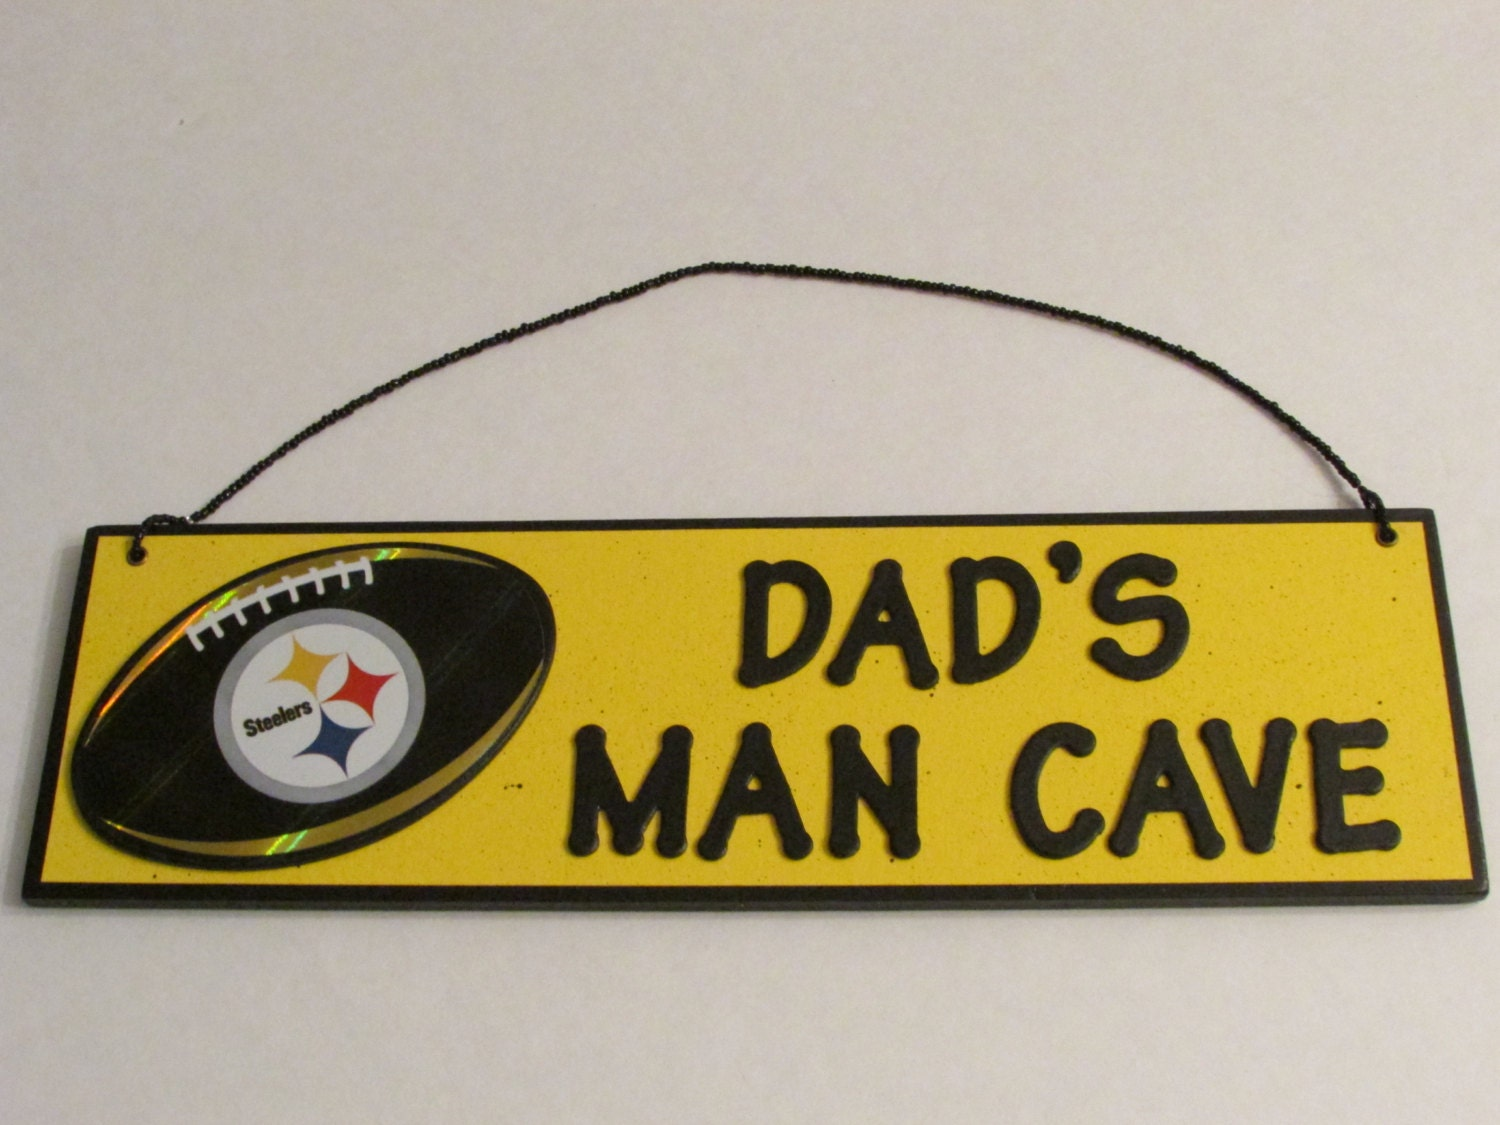 Man Cave Signs Nfl : Nfl pittsburgh steelers football dad s man cave sign